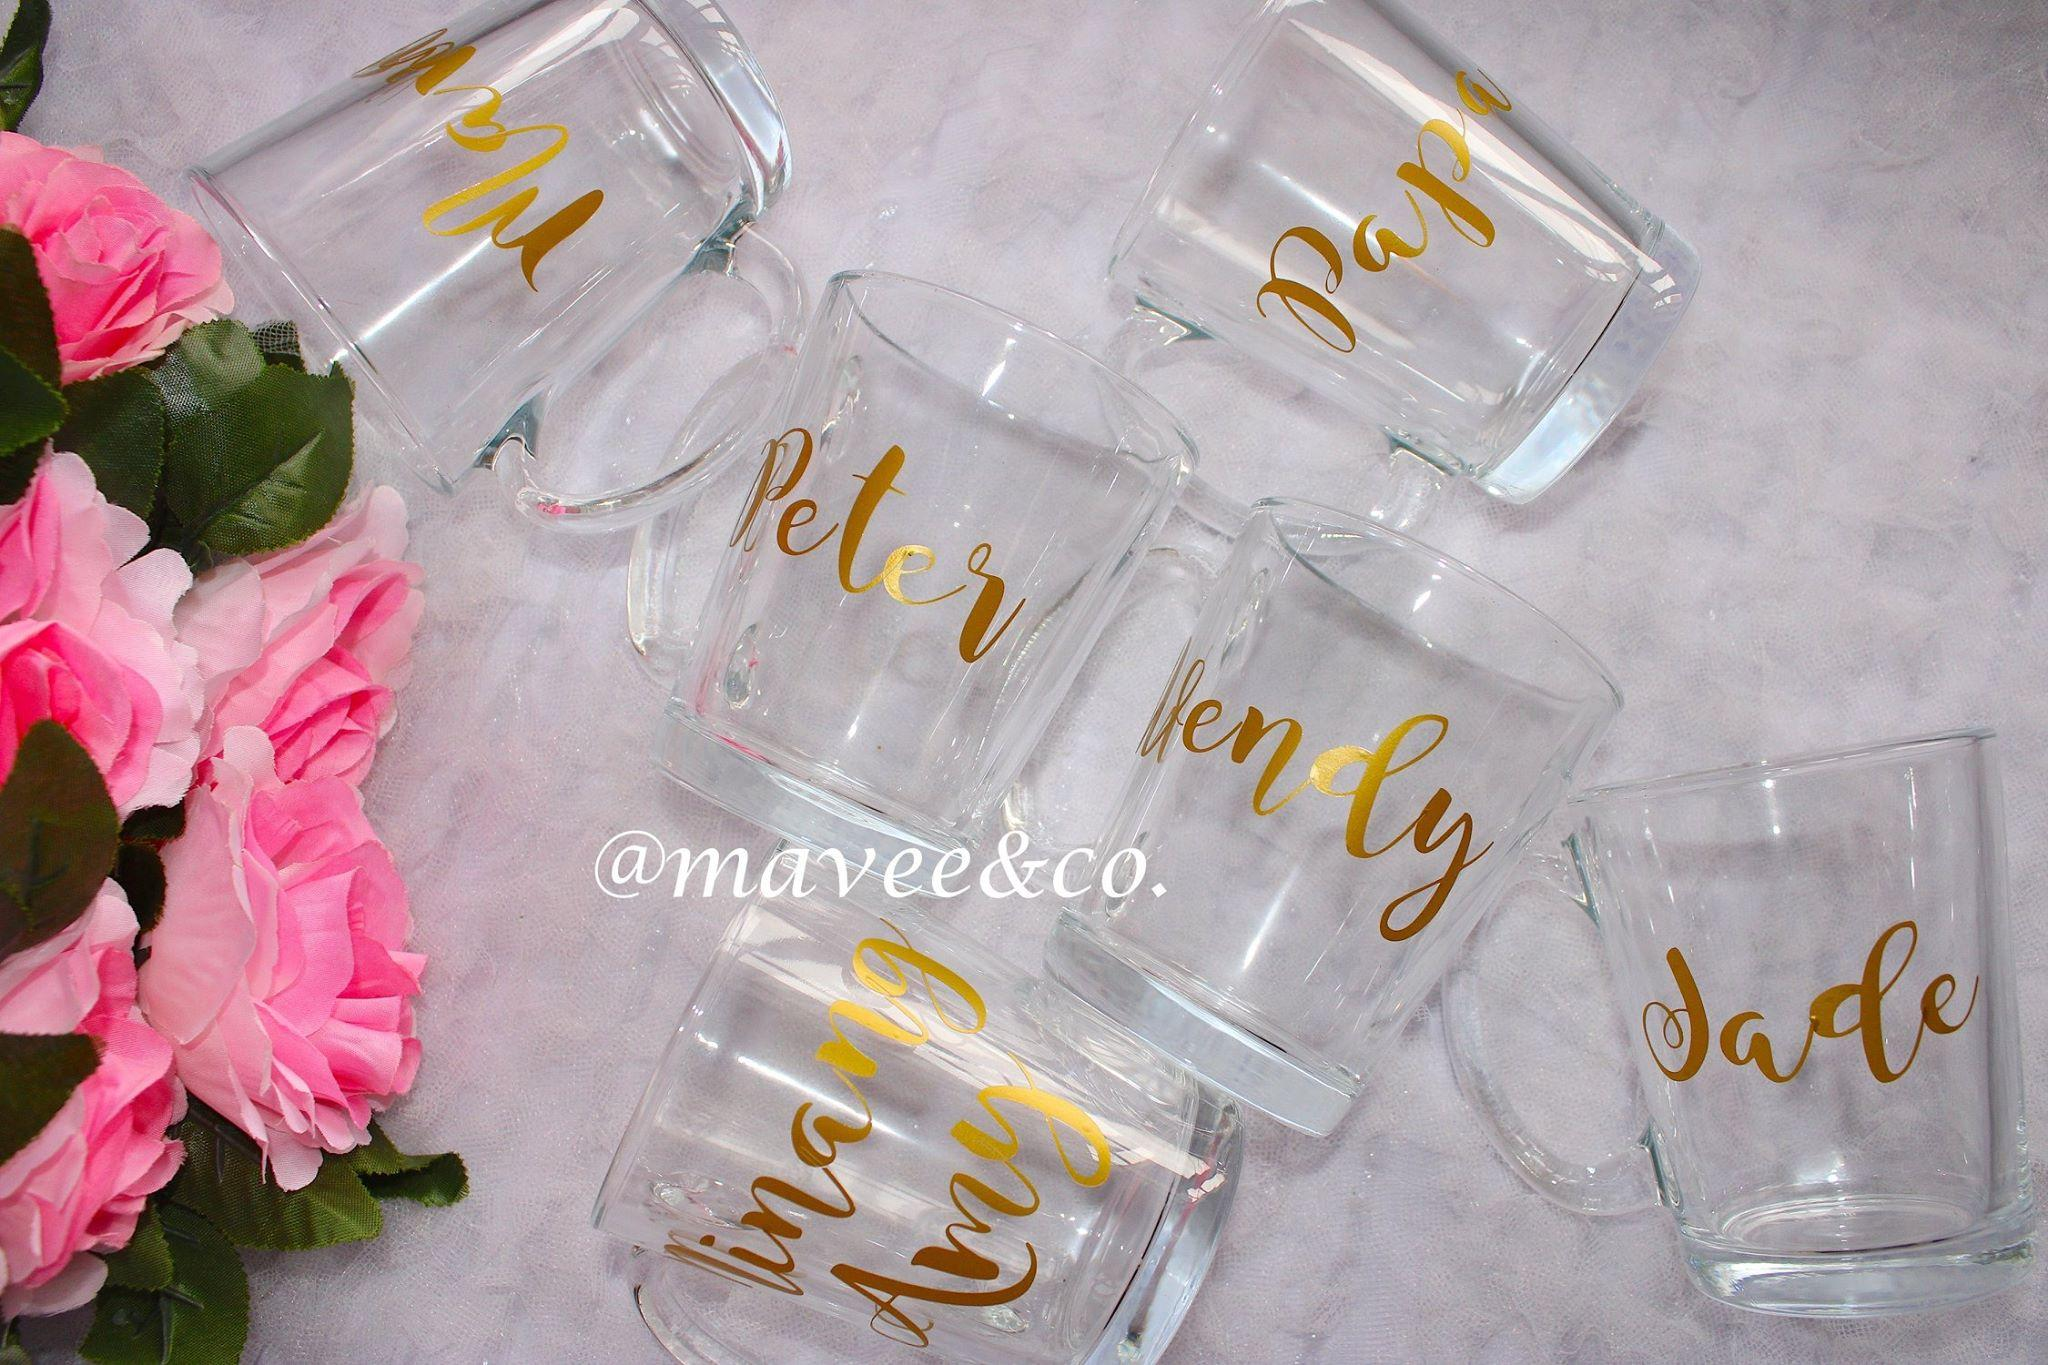 Product details of personalized clear mug with decal sticker